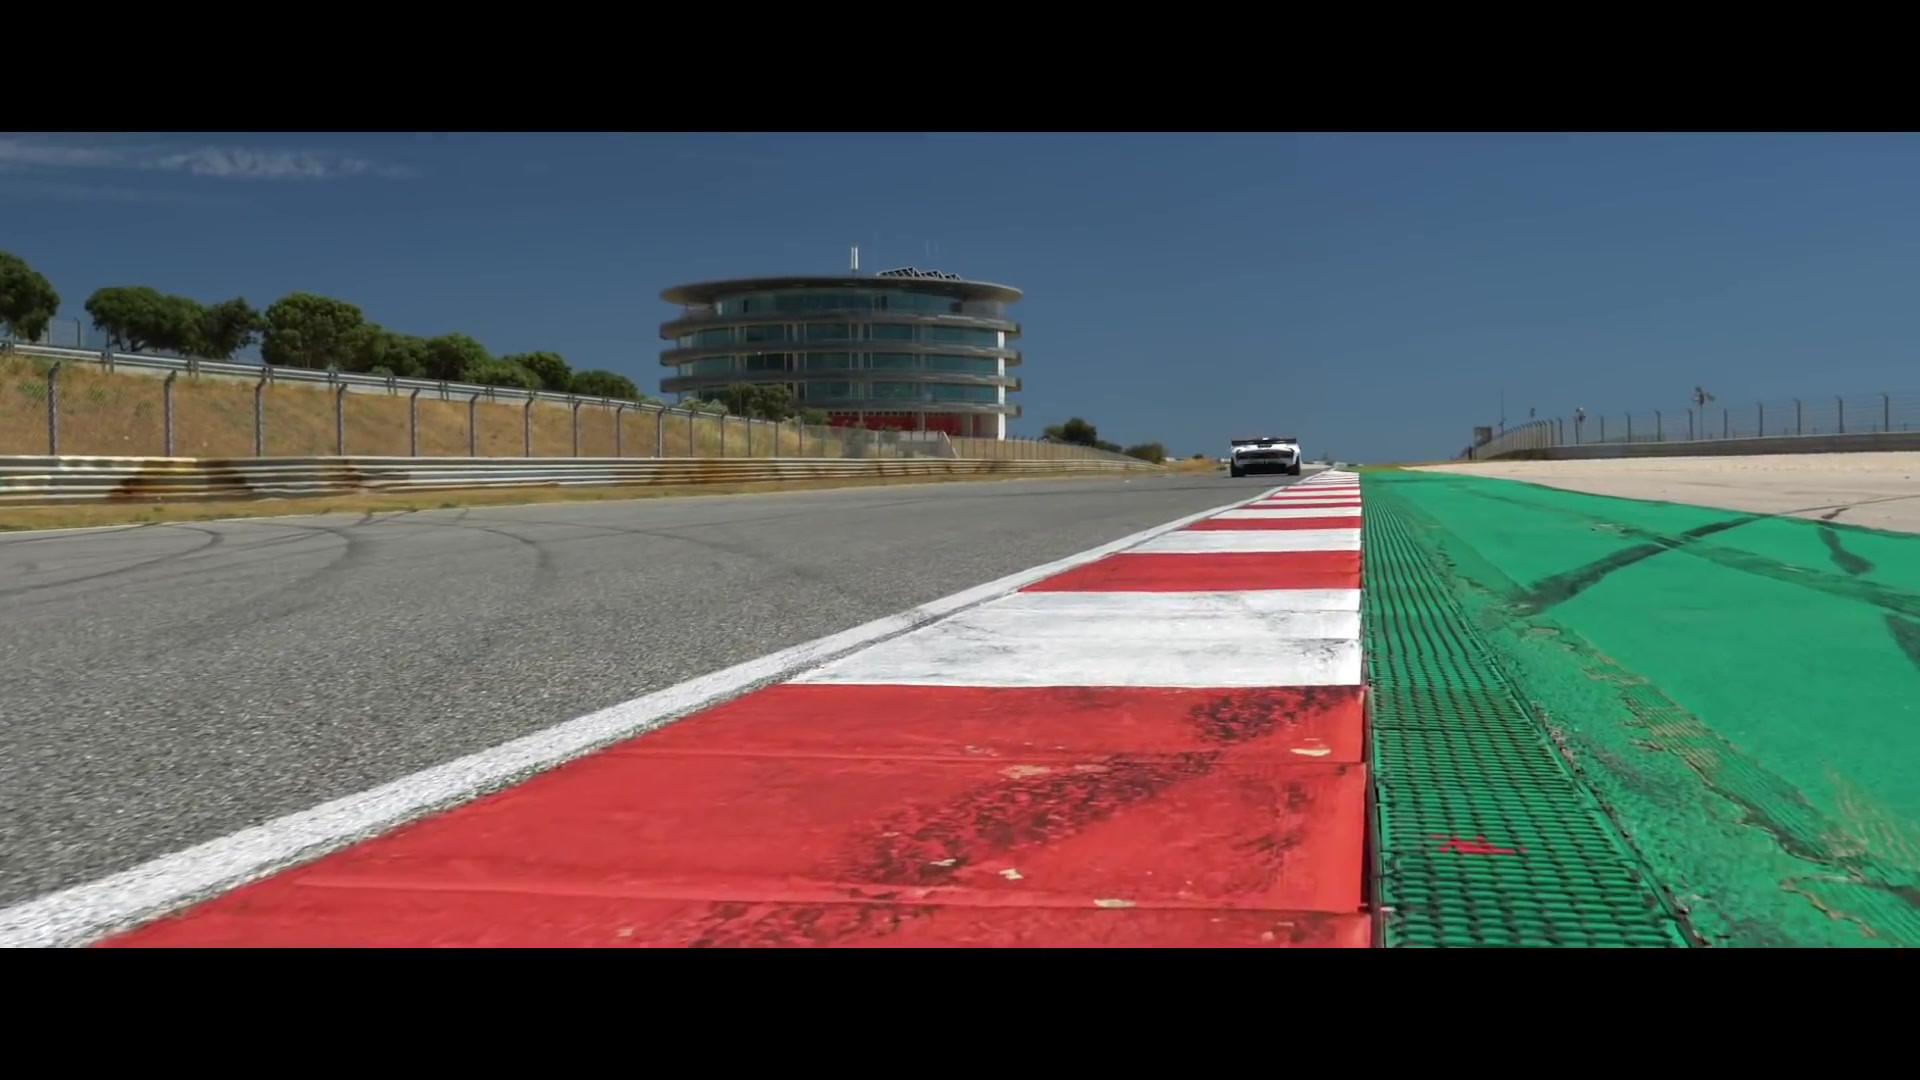 Brabham BT62 in action at Portimao